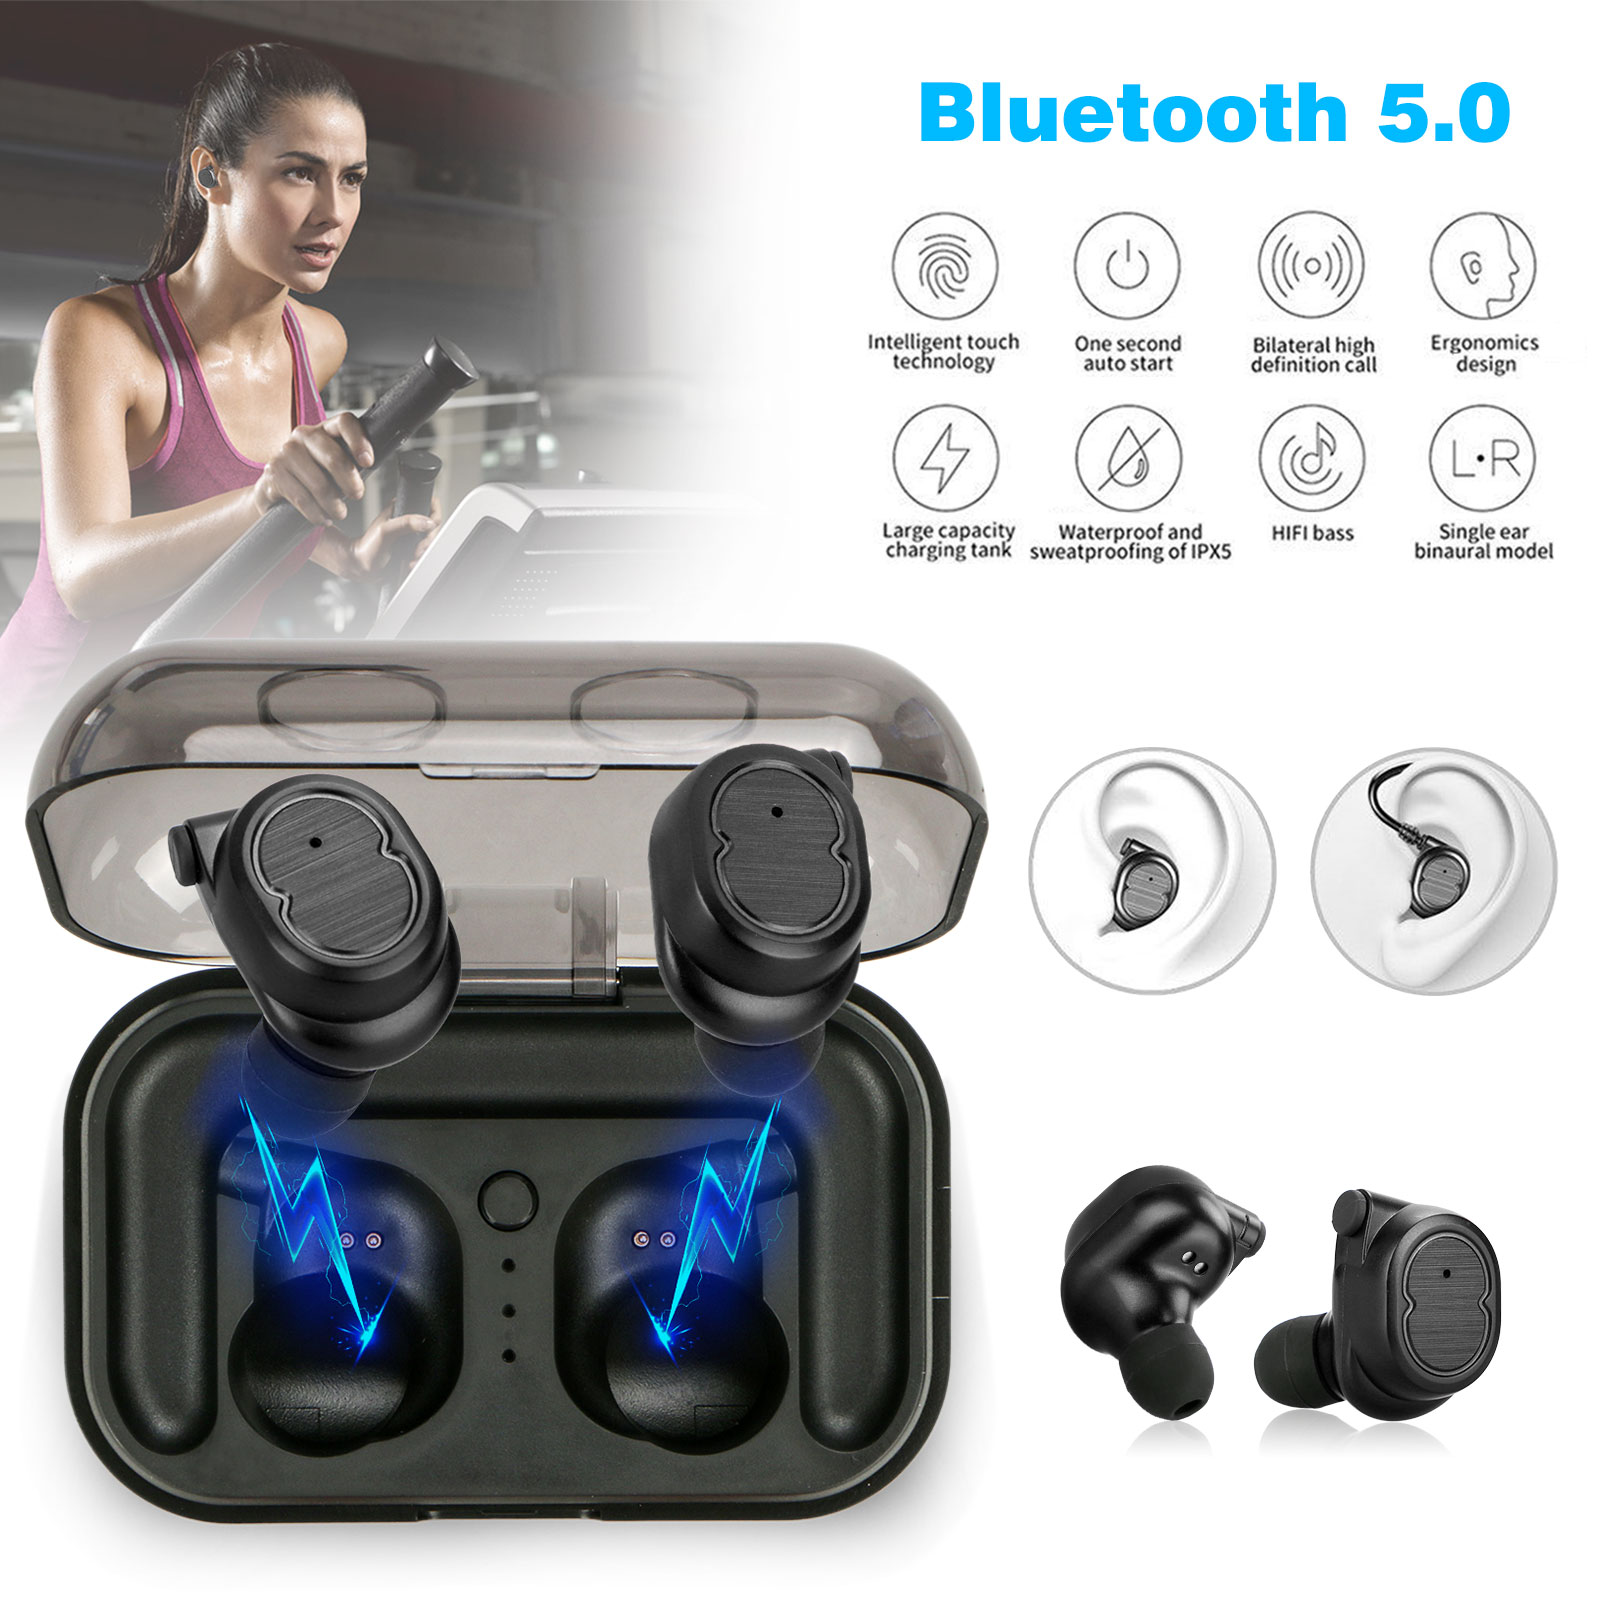 Wireless Earbuds, EEEKit Mini True Wireless Bluetooth 5.0 Earbud Sweatproof In-Ear HD Sound Headphone Touch Control Earphone Headset with Portable 500mAh Charging Case